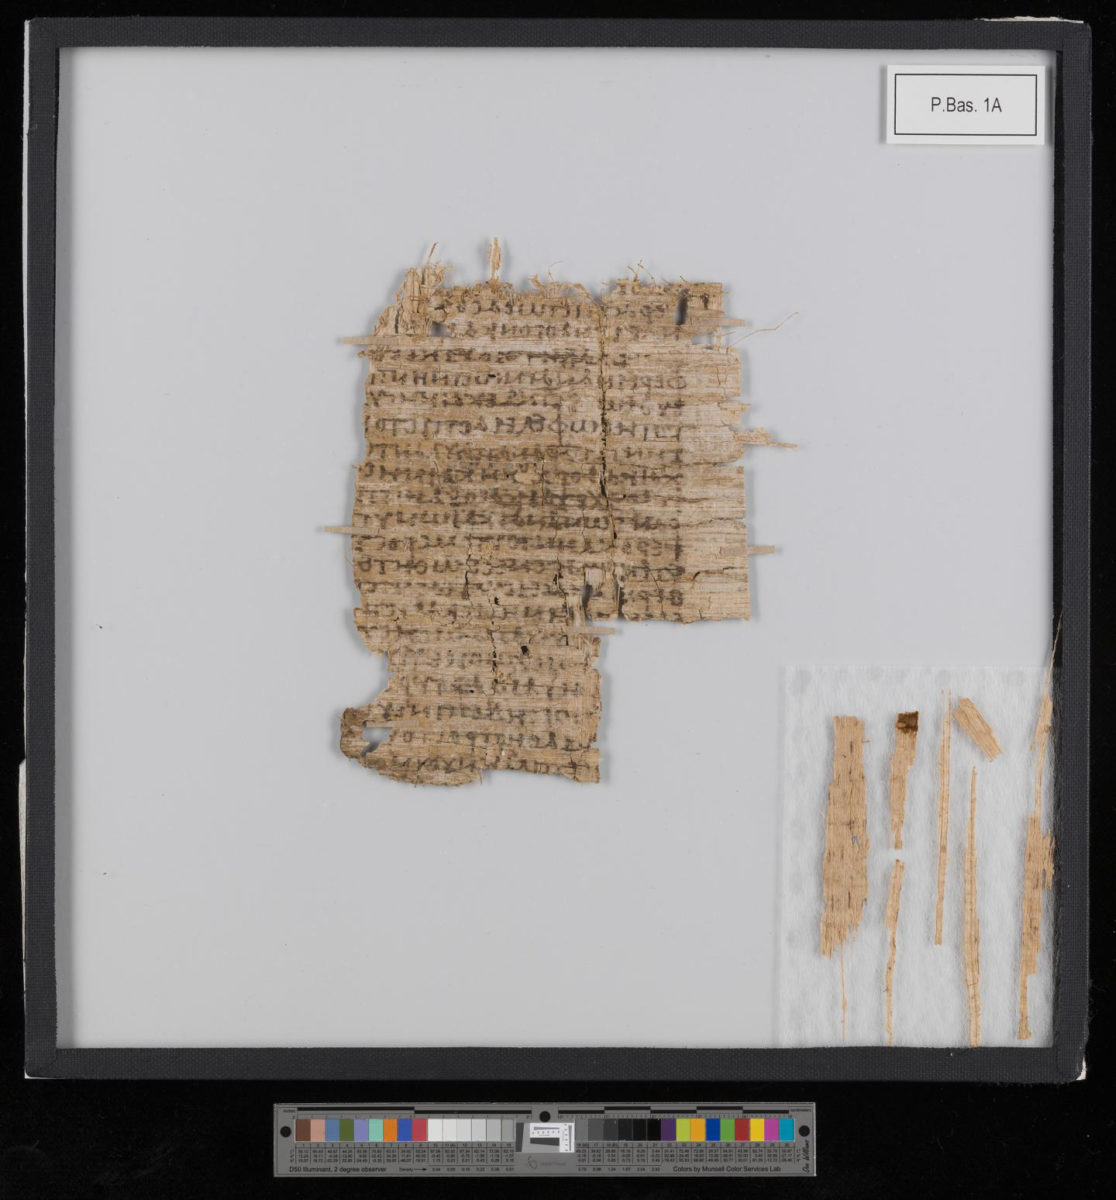 After conservation: cleaned, smoothed and consolidated. A specialized papyrus conservator was brought to Basel to make this 2,000-year-old document legible again. Credit: University of Basel